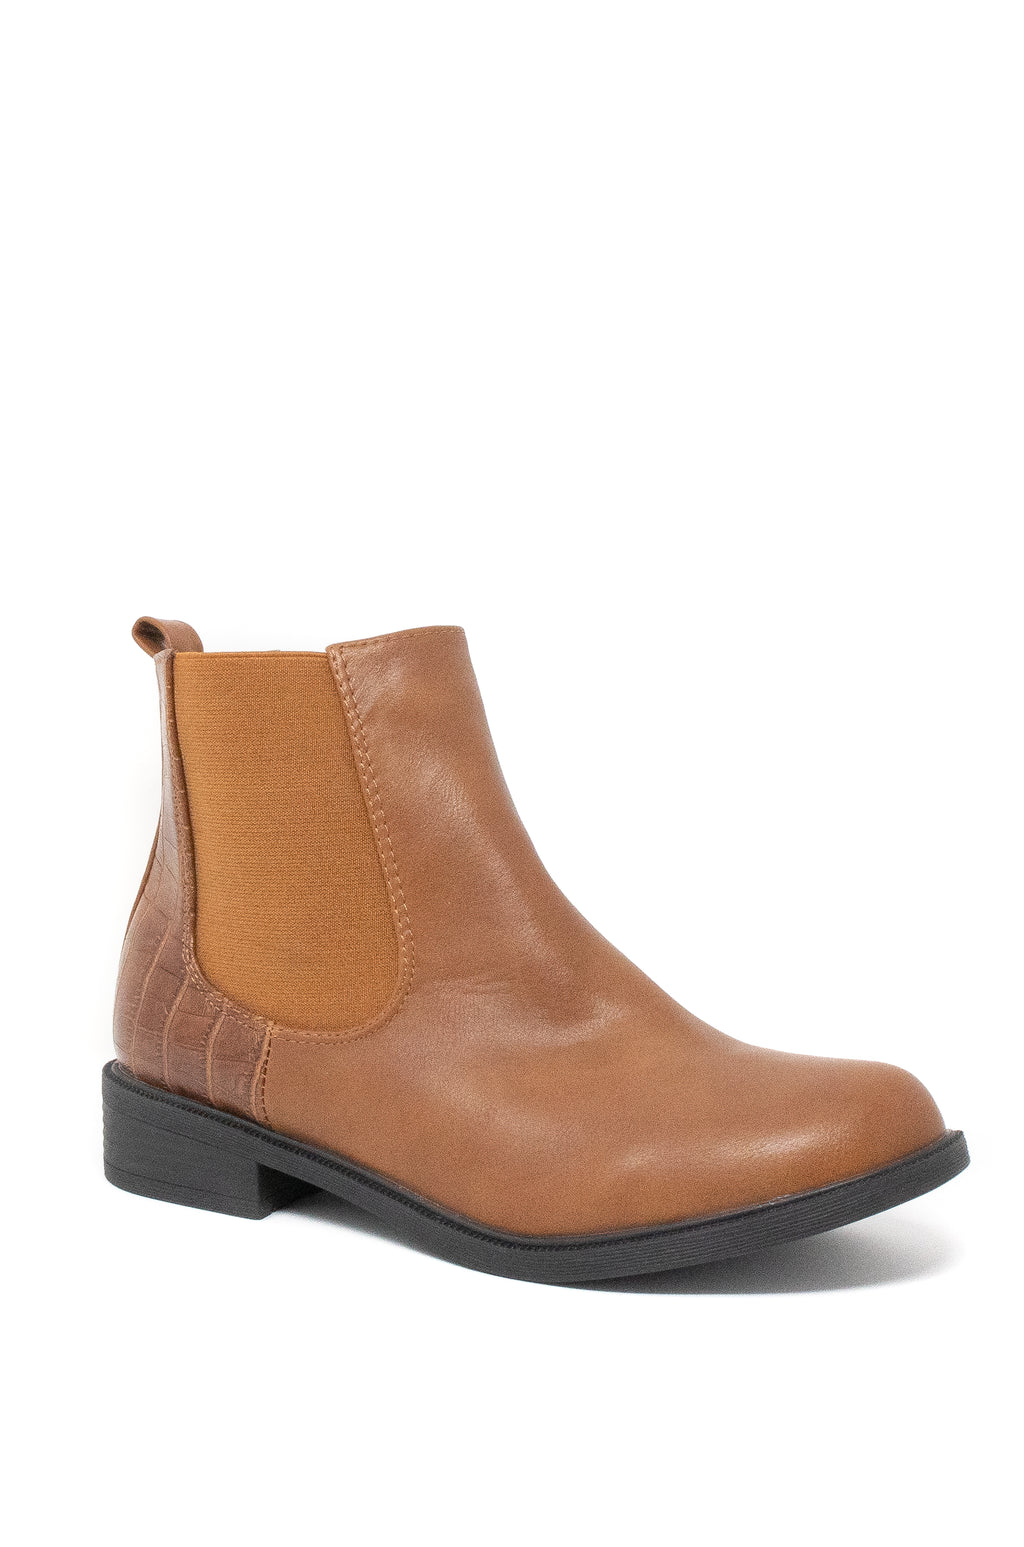 Double Take - Cognac Chelsea Booties